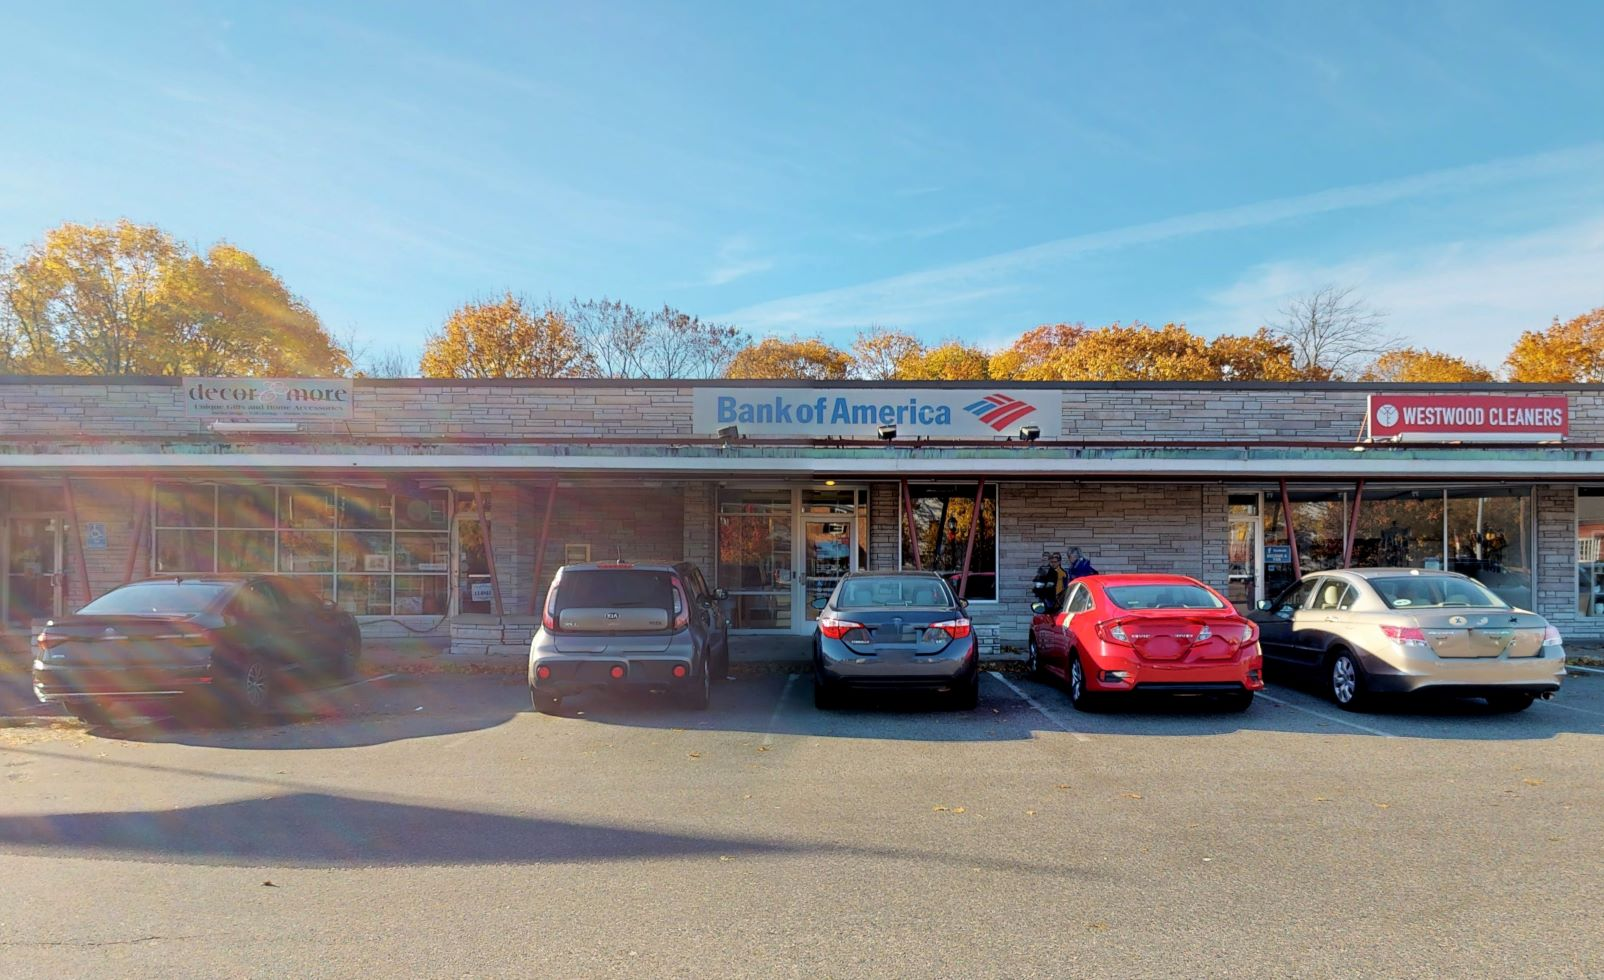 Bank of America financial center with walk-up ATM | 693 High St, Westwood, MA 02090